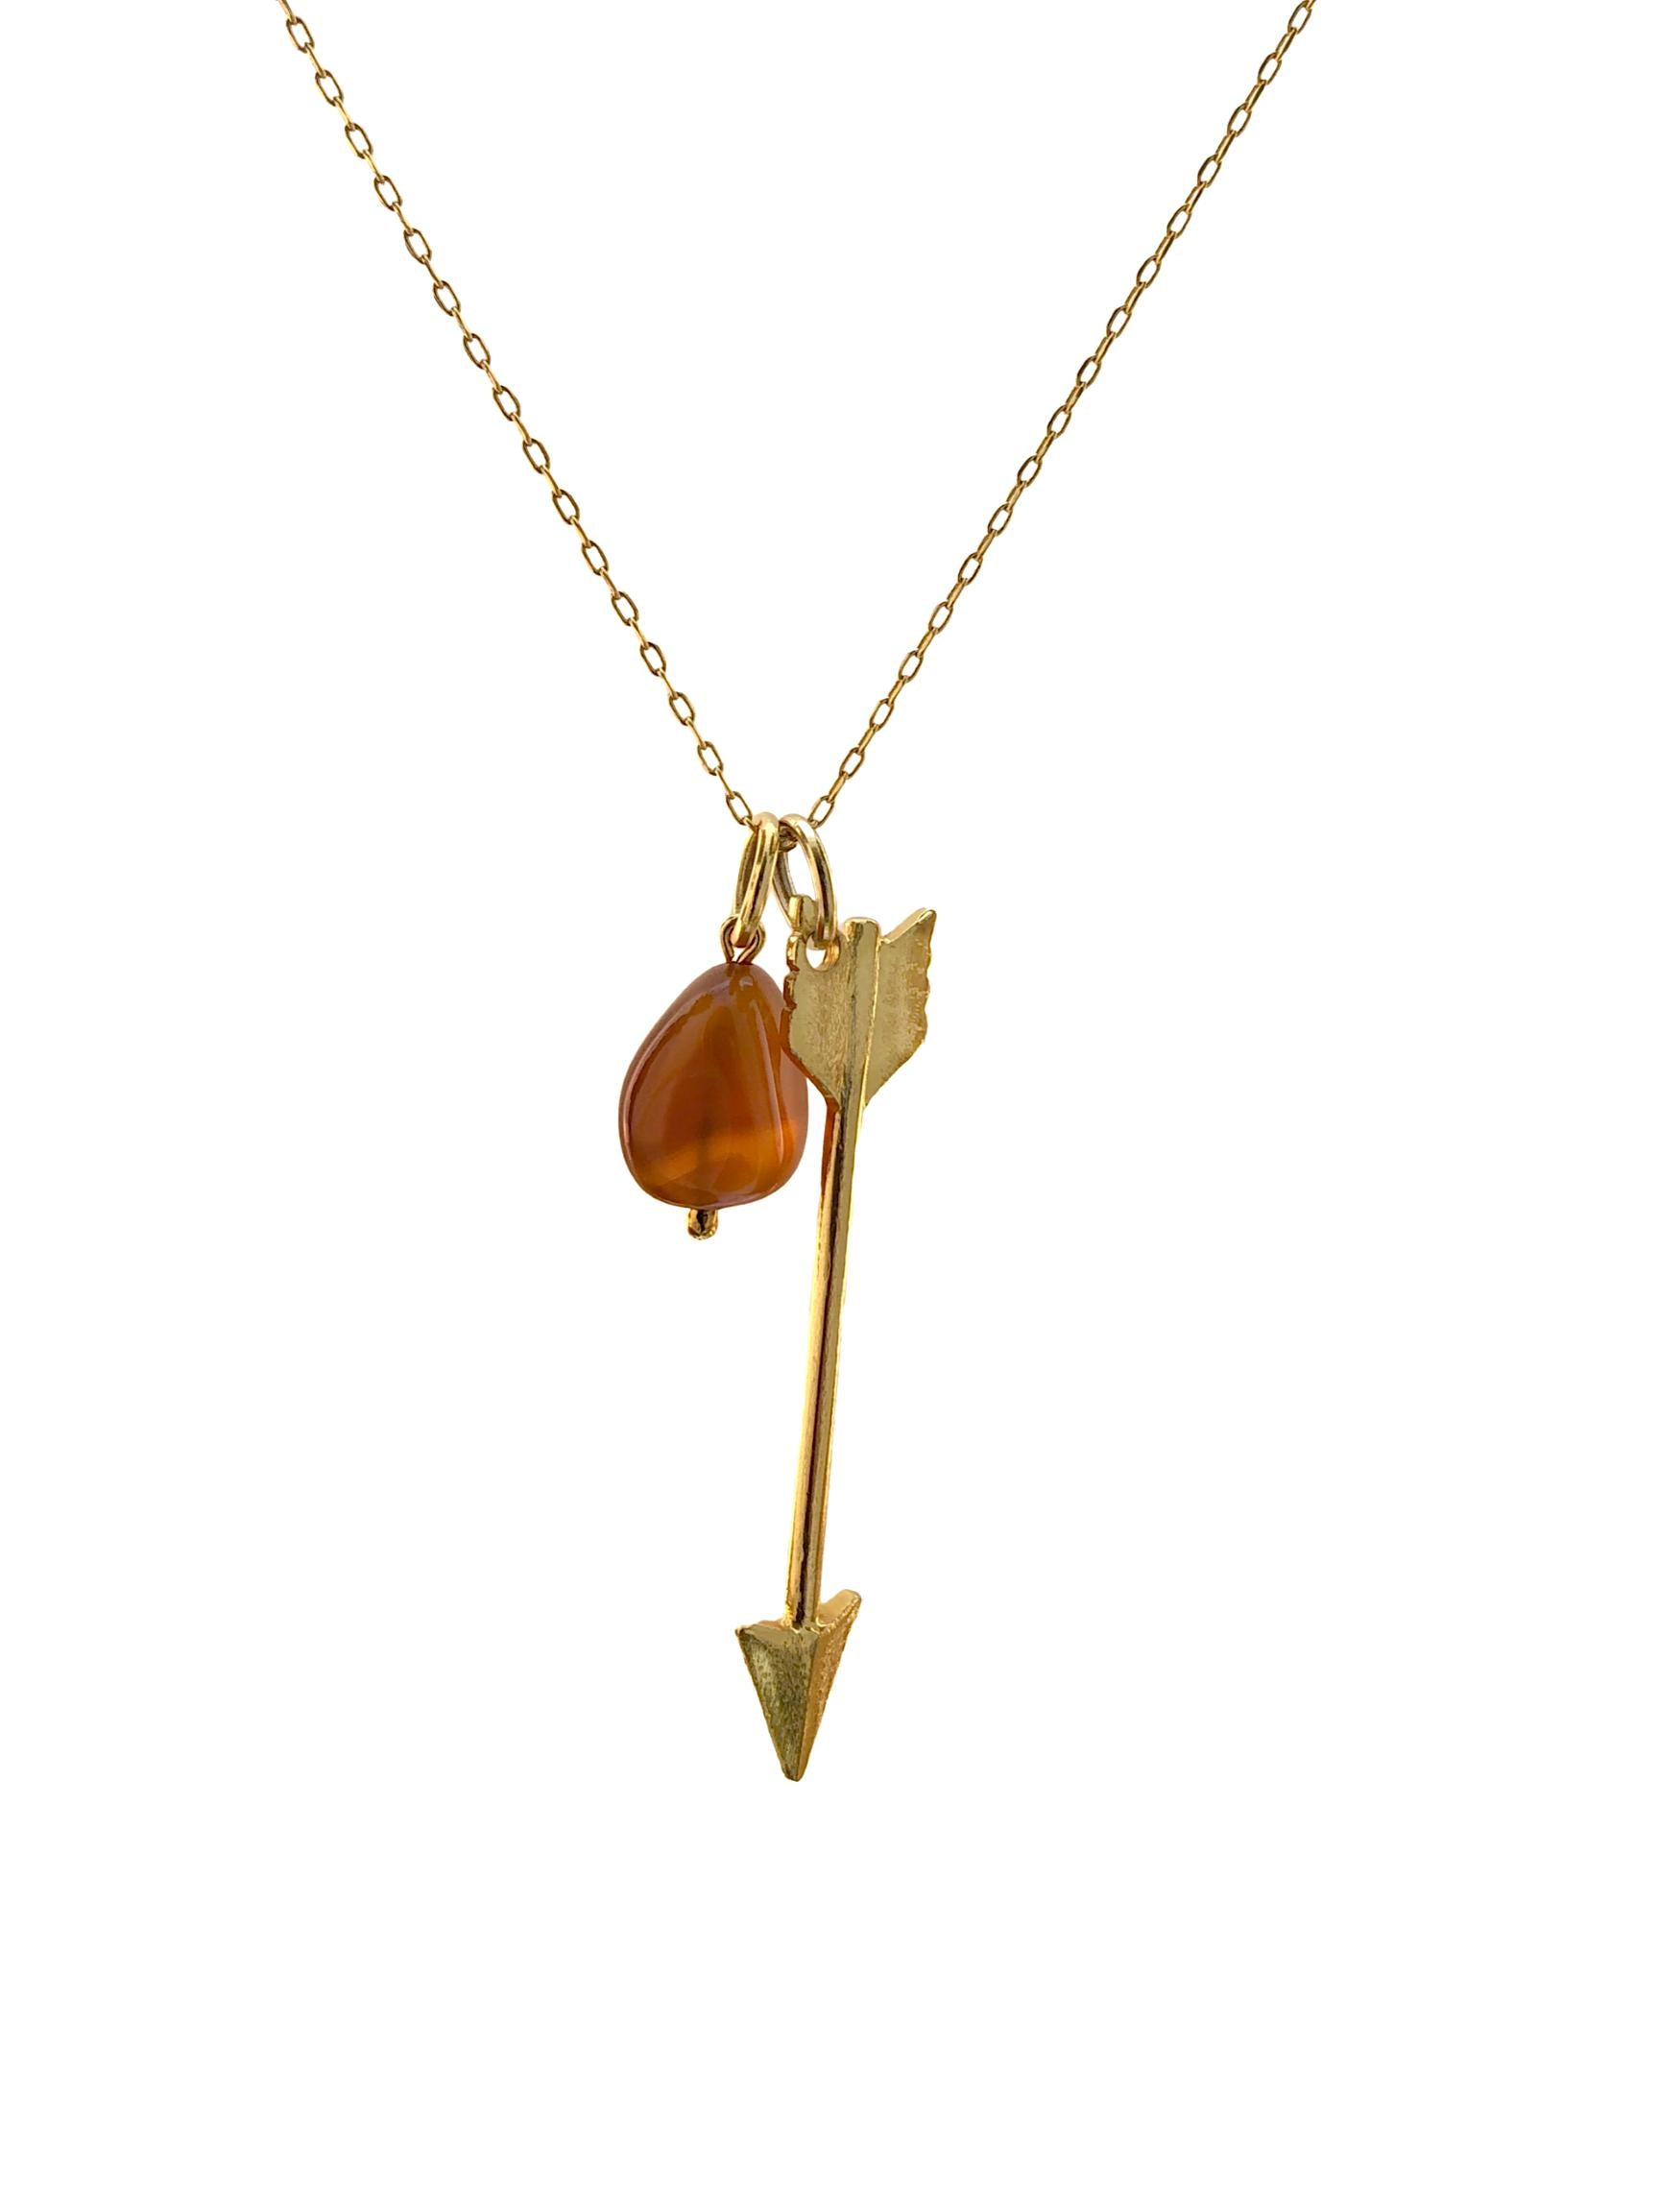 Gold Arrow Necklace Pendant Charm-Pendant Charms-JAREDJAMIN Jewelry Online-JAREDJAMIN - Fashion Jewelry & Accessories